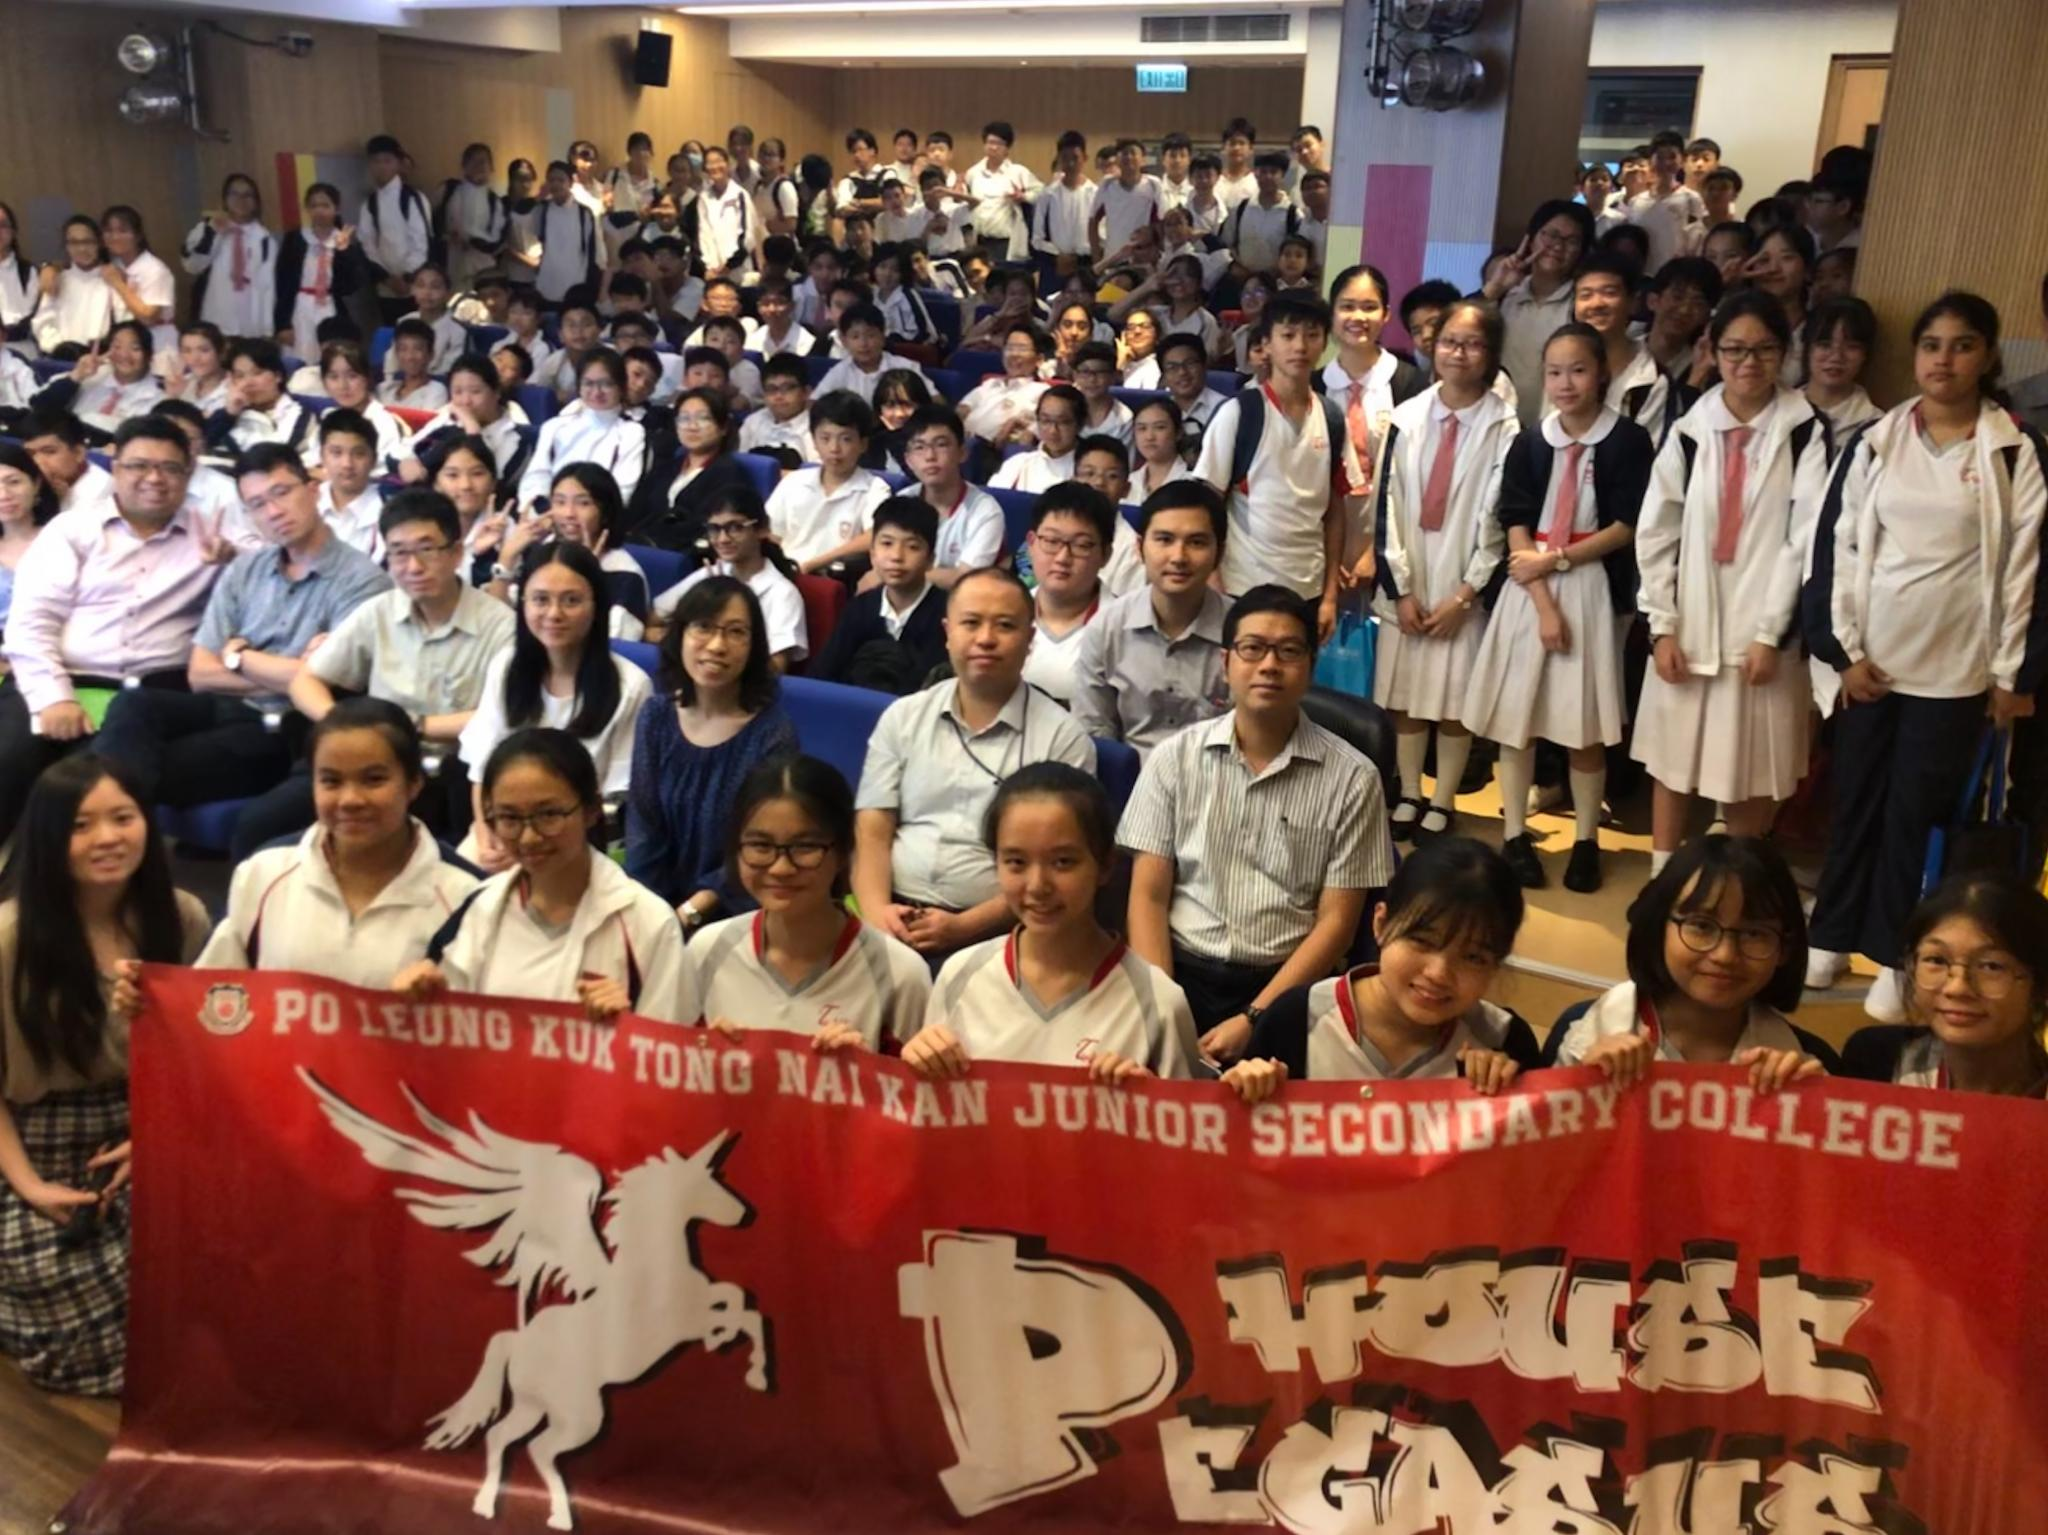 House Pegasus members were having House AGM in the Lecture Theatre.